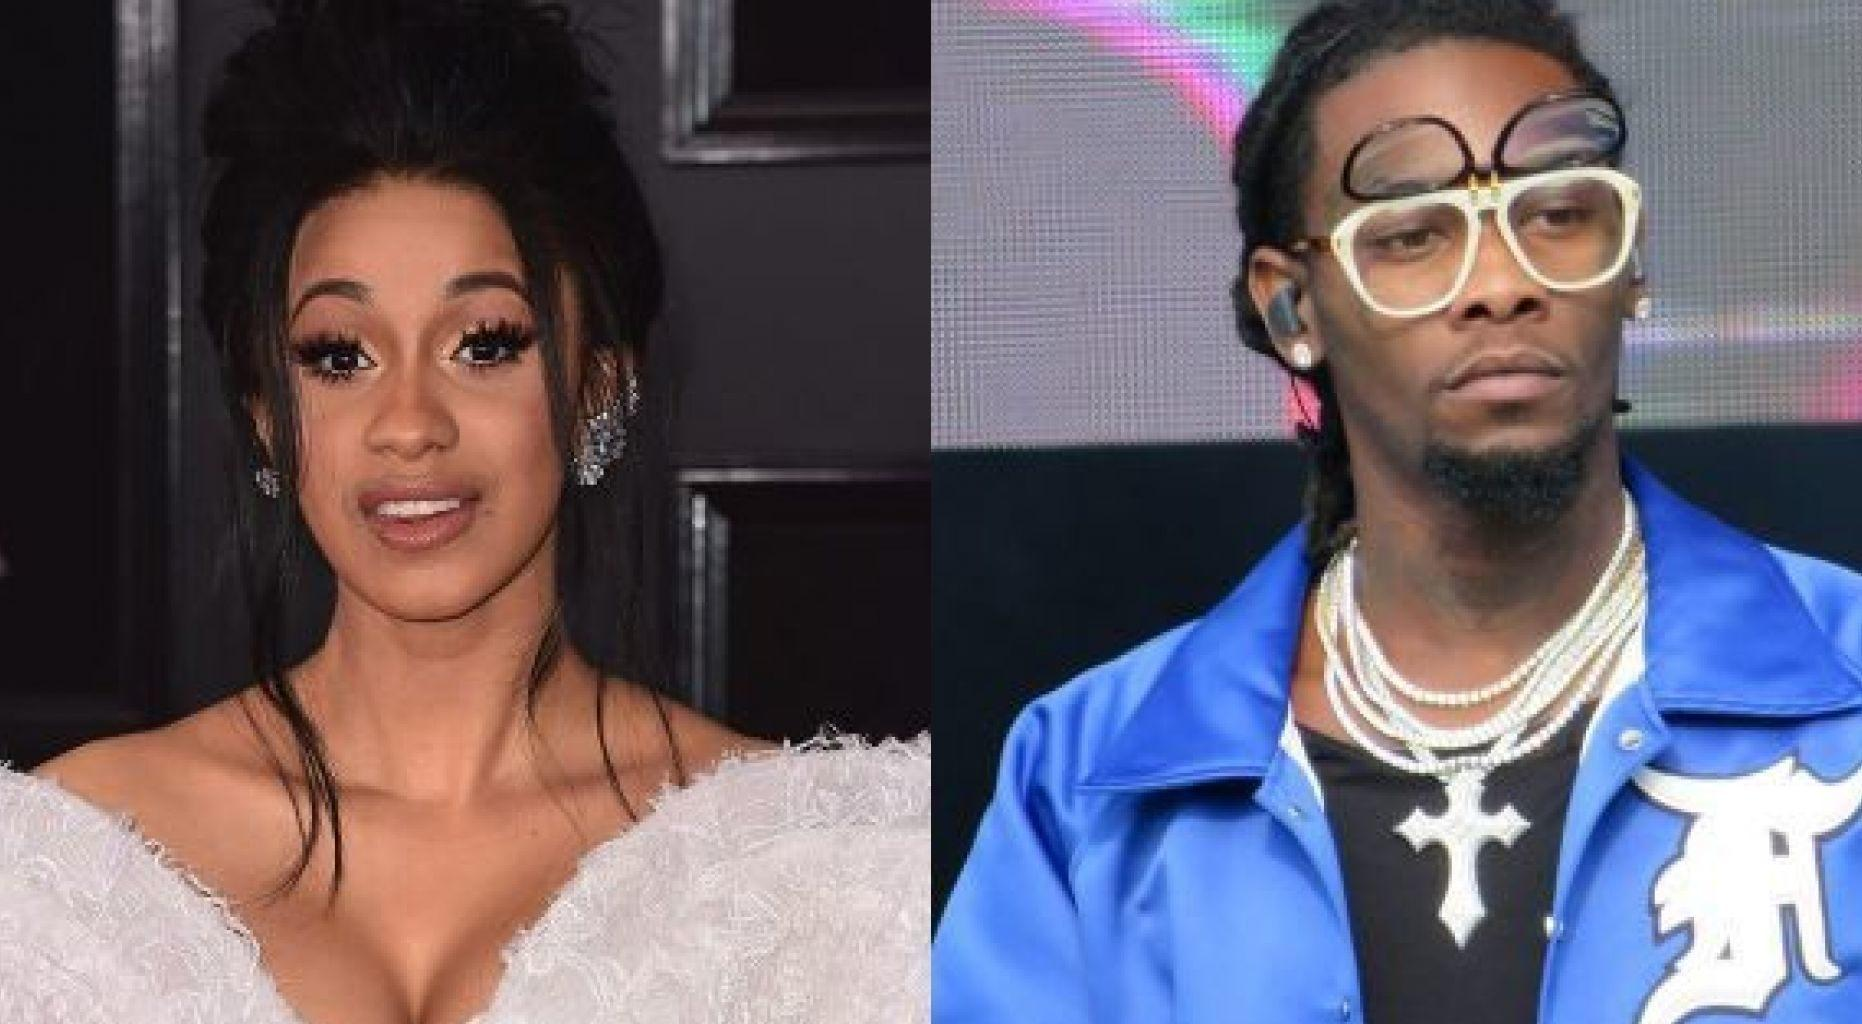 Cardi B Is Reportedly Telling Friends That She And Offset Are 'Back On' And Keeps Posting Racy Content